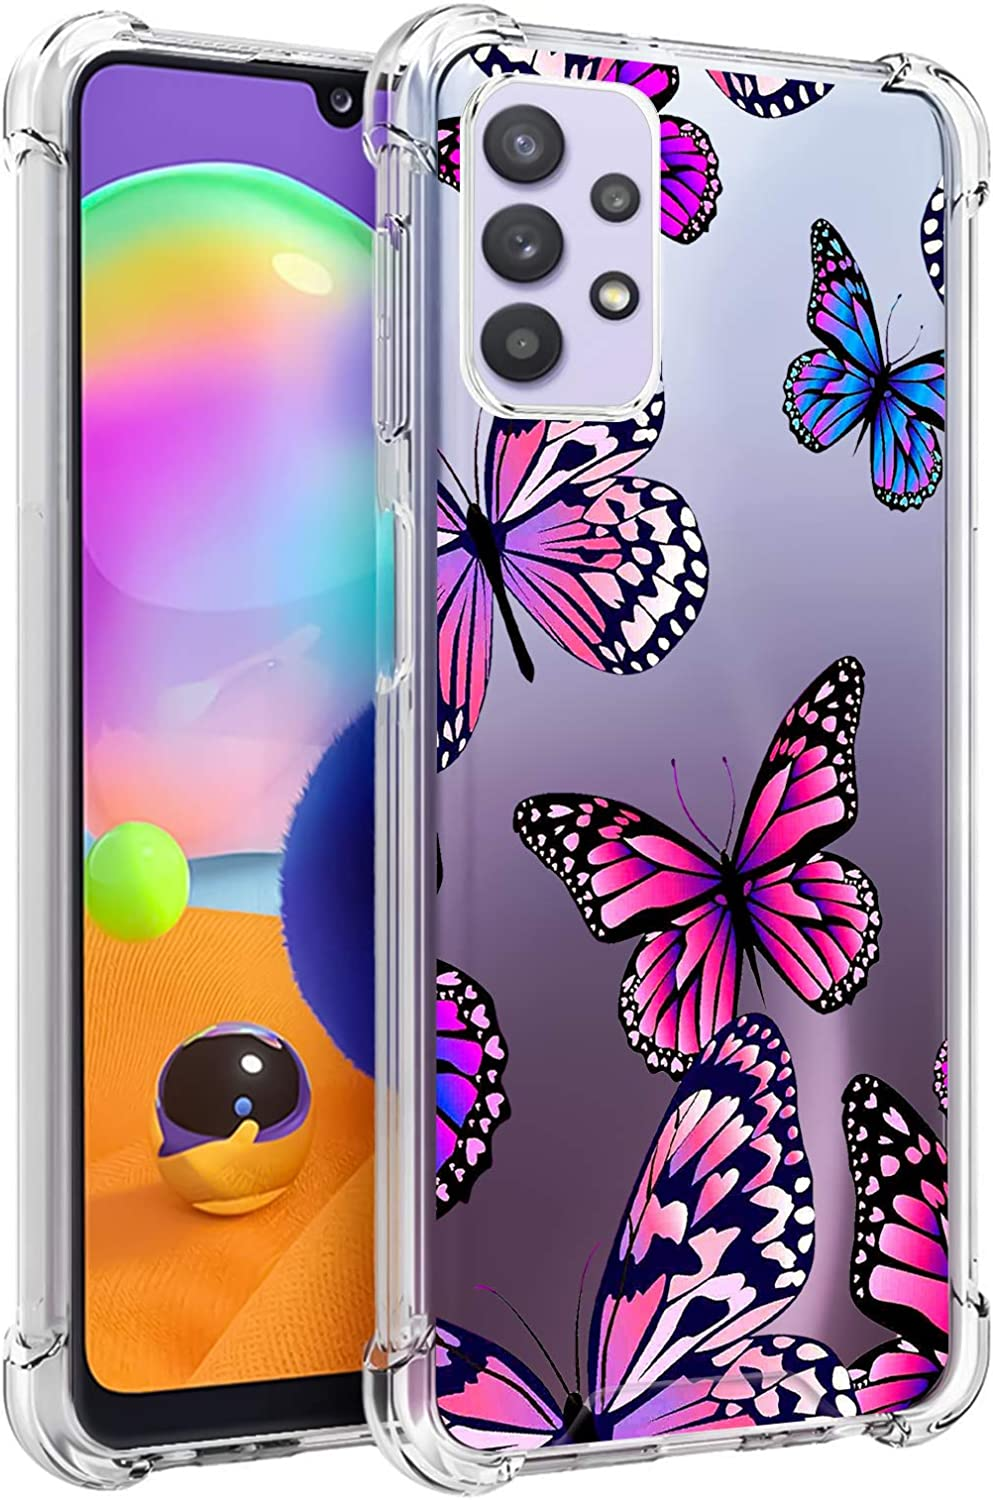 LSL Samsung Galaxy A32 5G Clear Case Butterflies Floral Cute Design Pattern Hard PC Back + Soft TPU Edges Shockproof Full Body Protection Wireless Charging Cover for Galaxy A32 5G 6.5 Inch